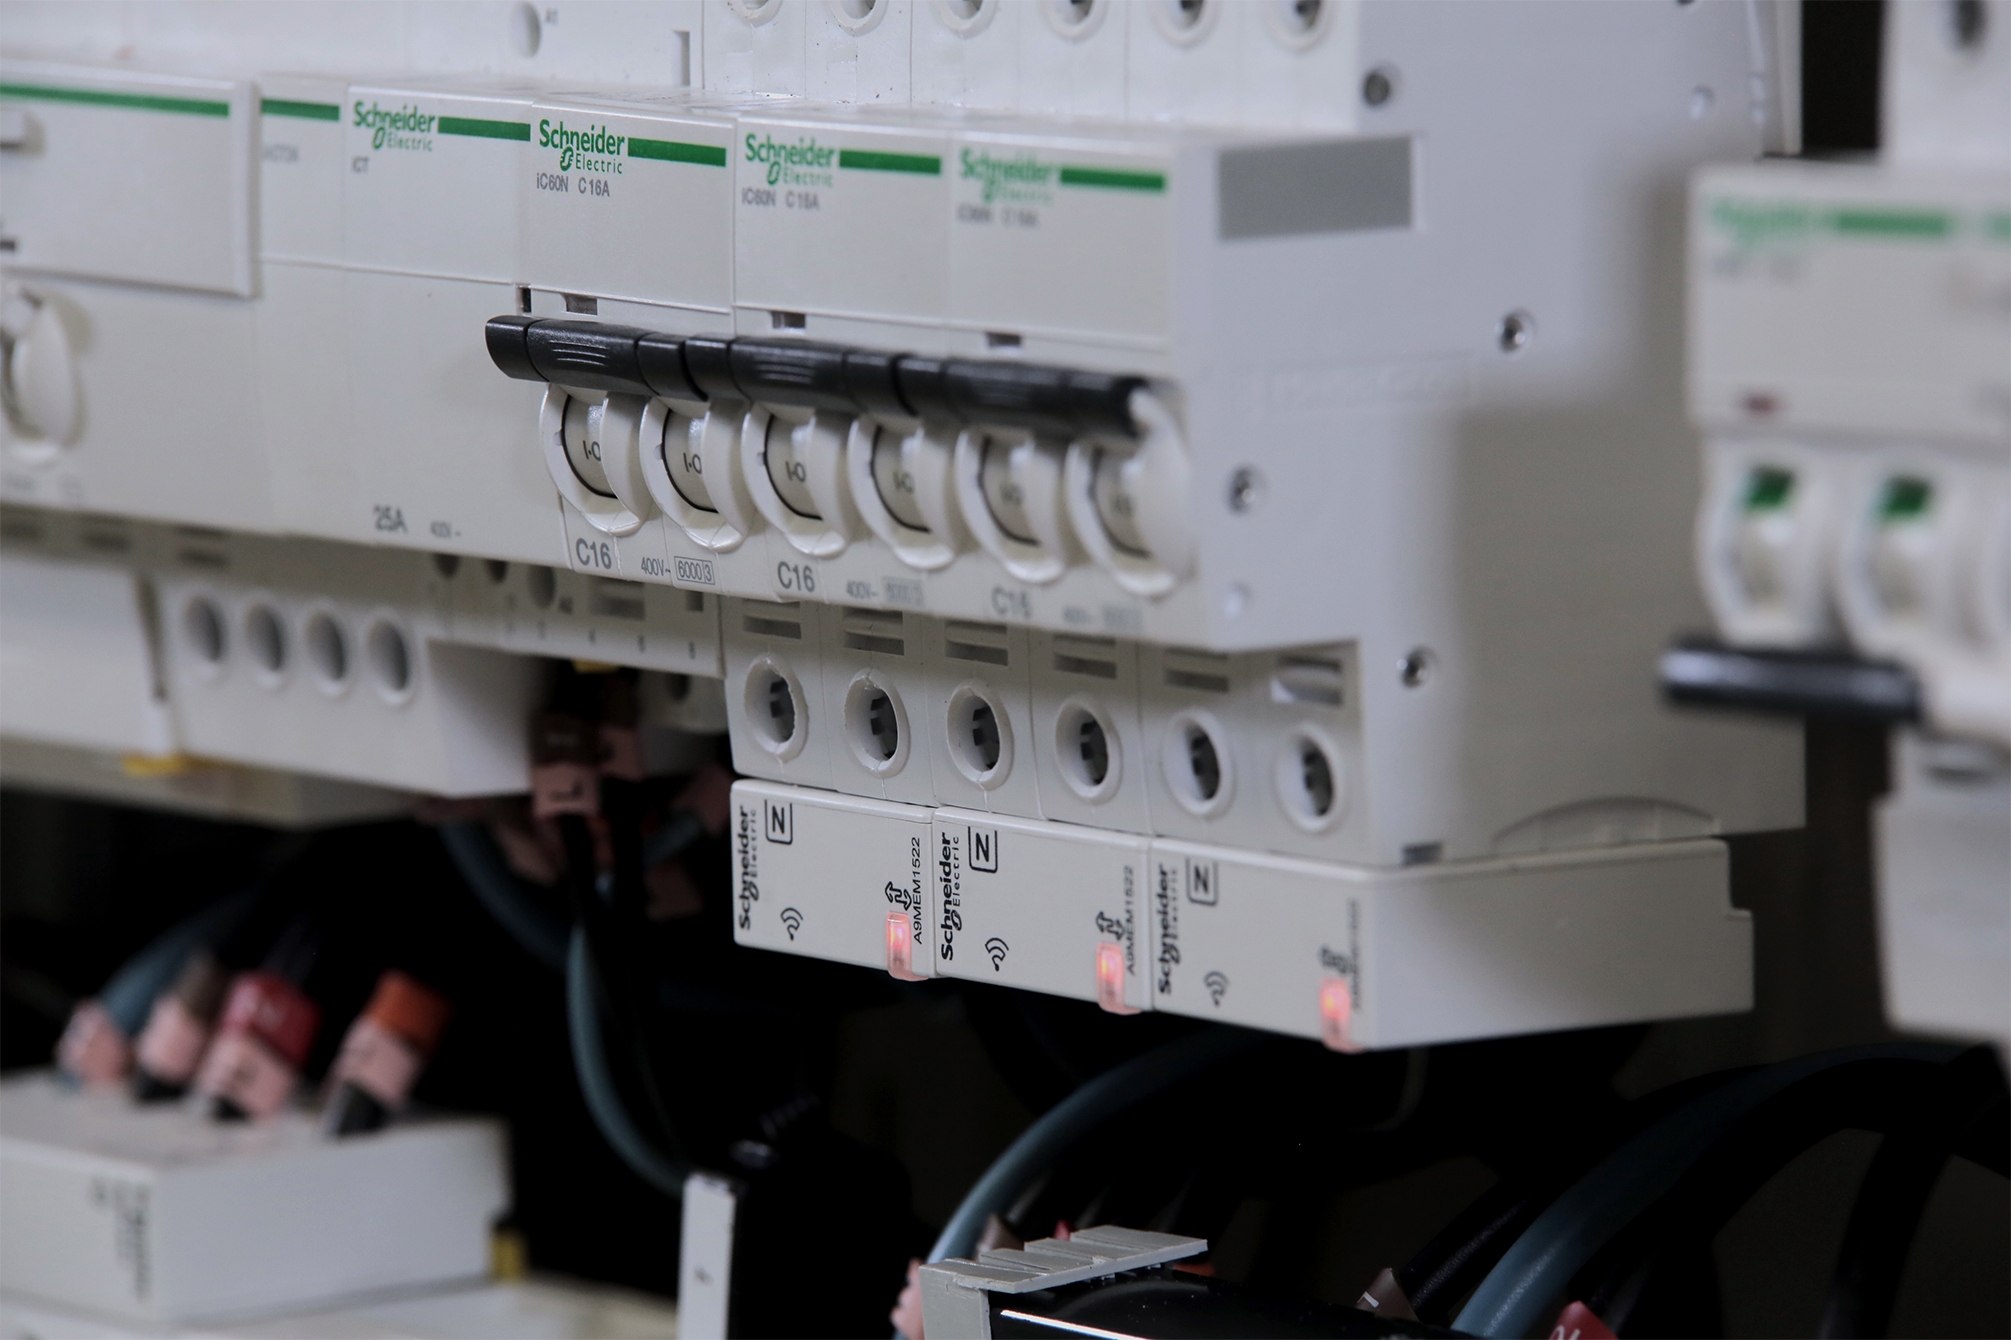 Schneider_Electric_Power_Tag_teljesitmenymero_2